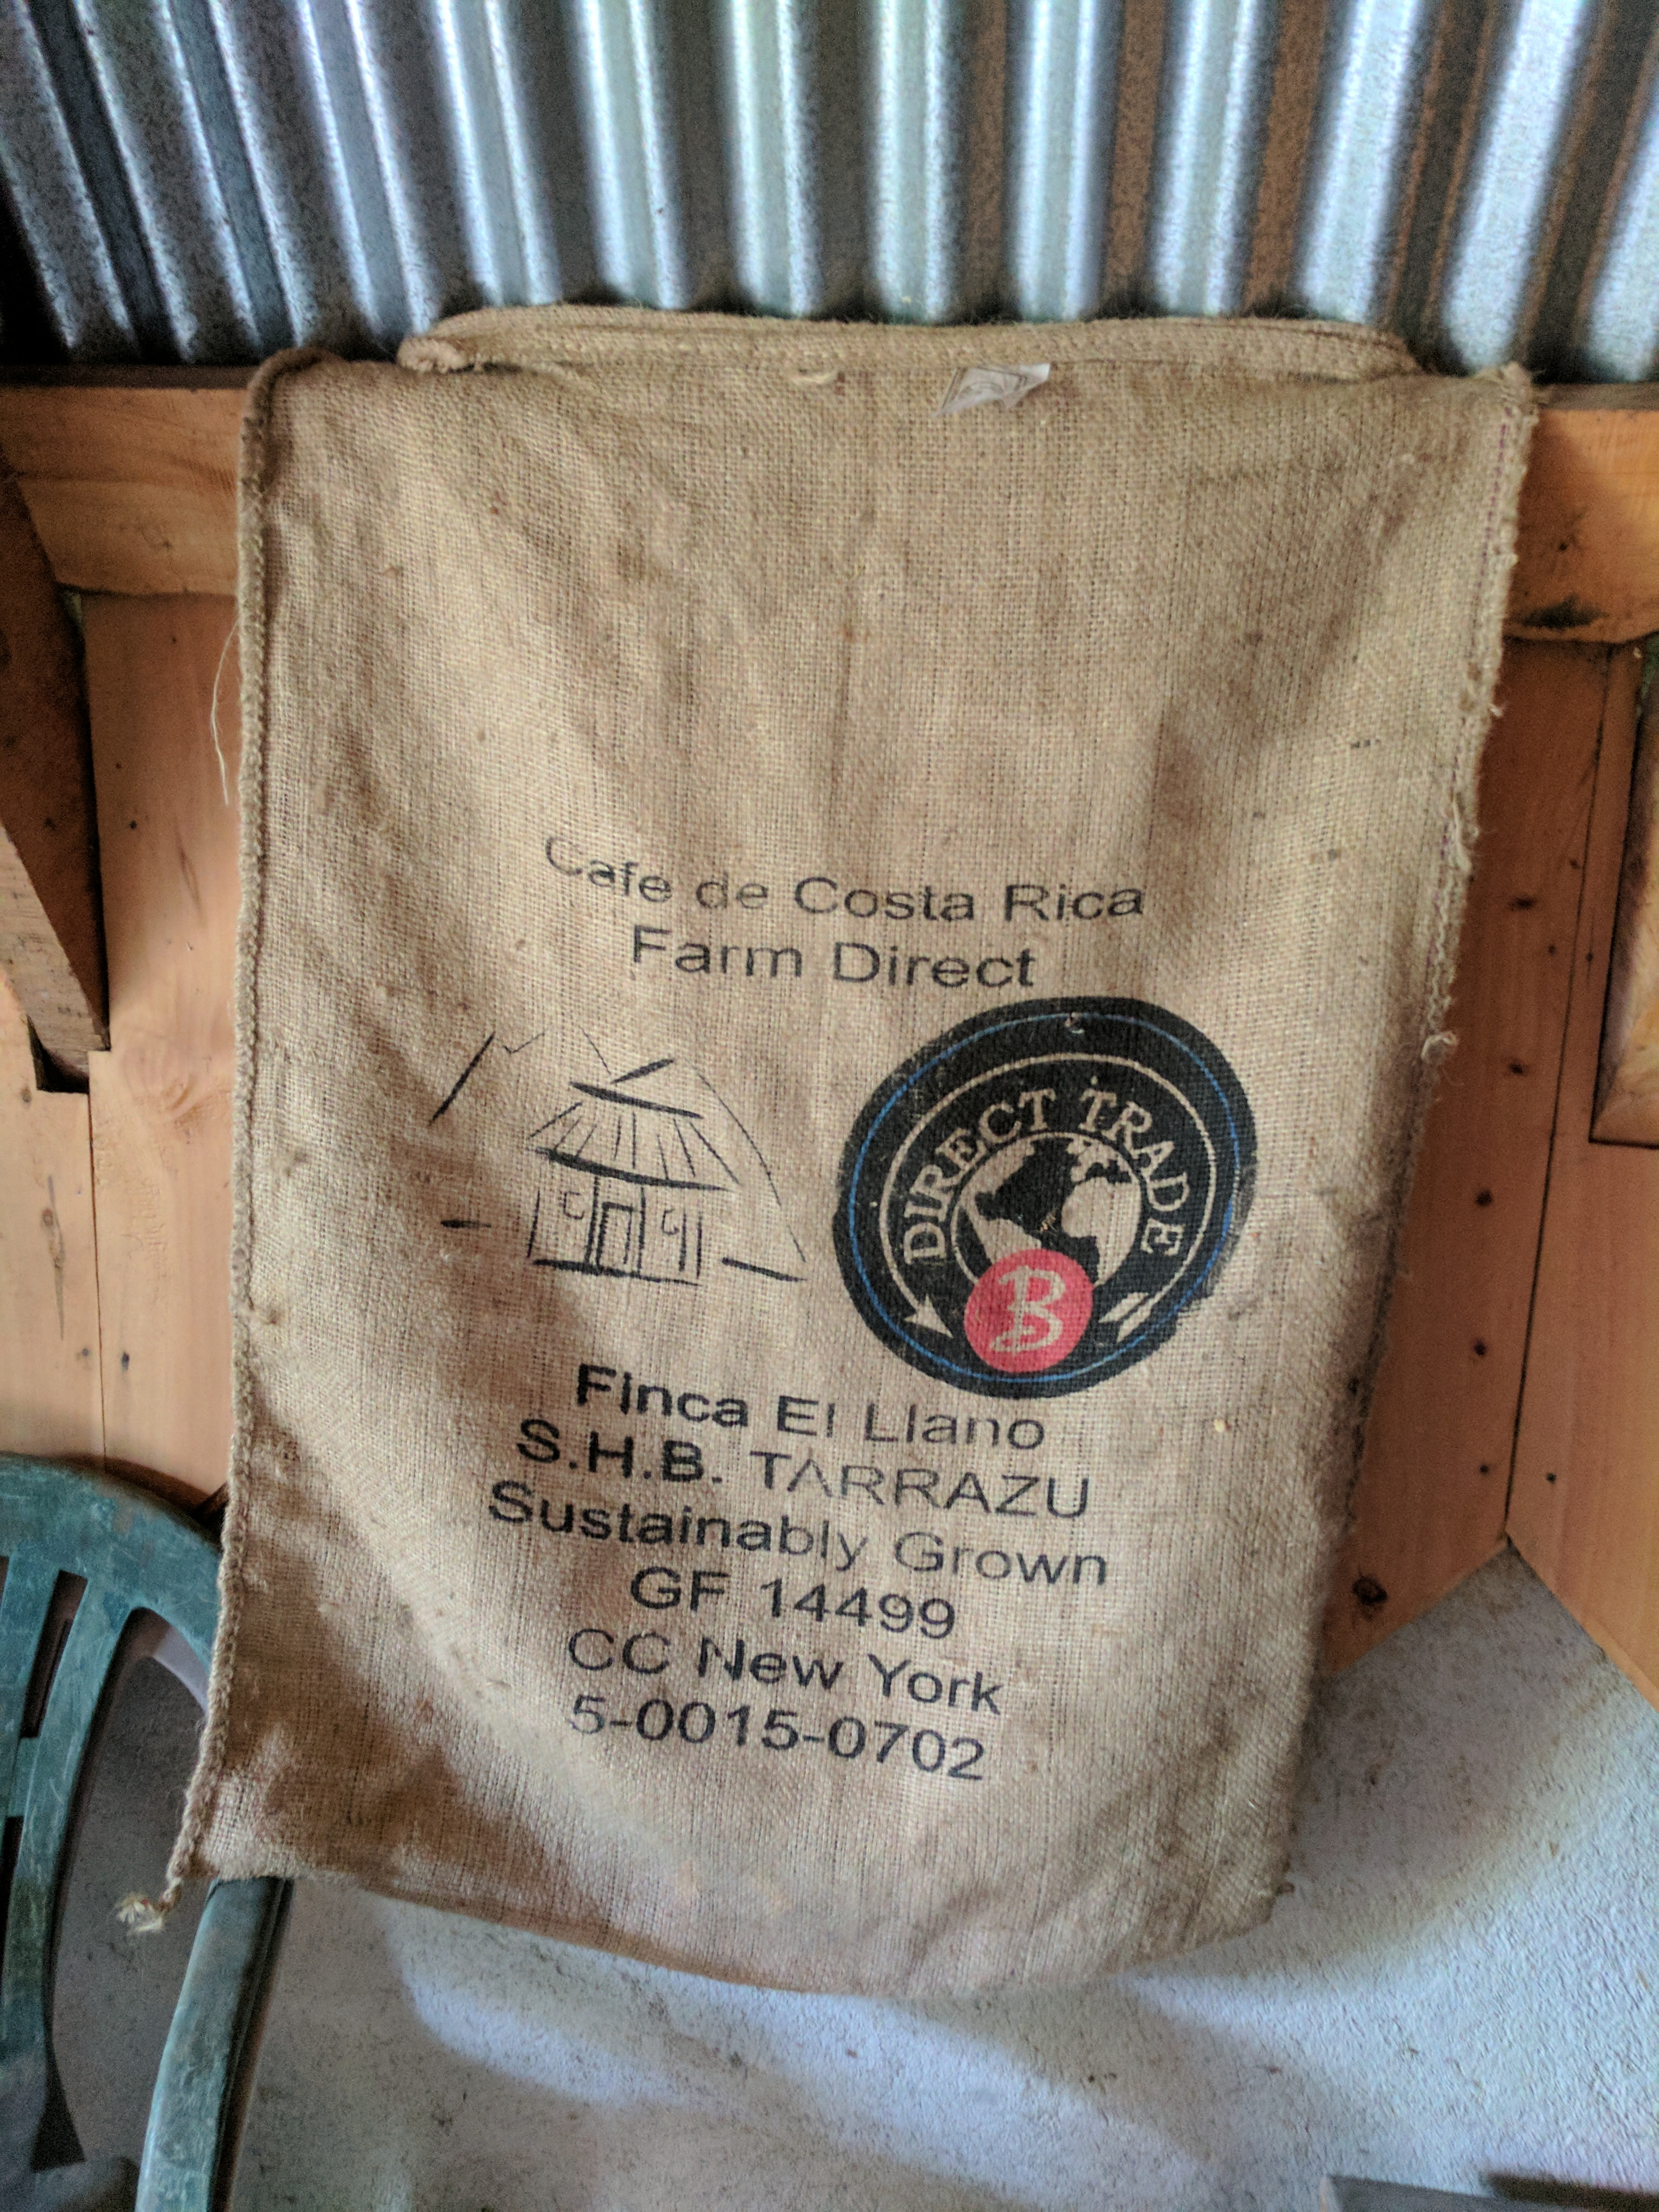 el-llano-direct-trade-bag.jpg